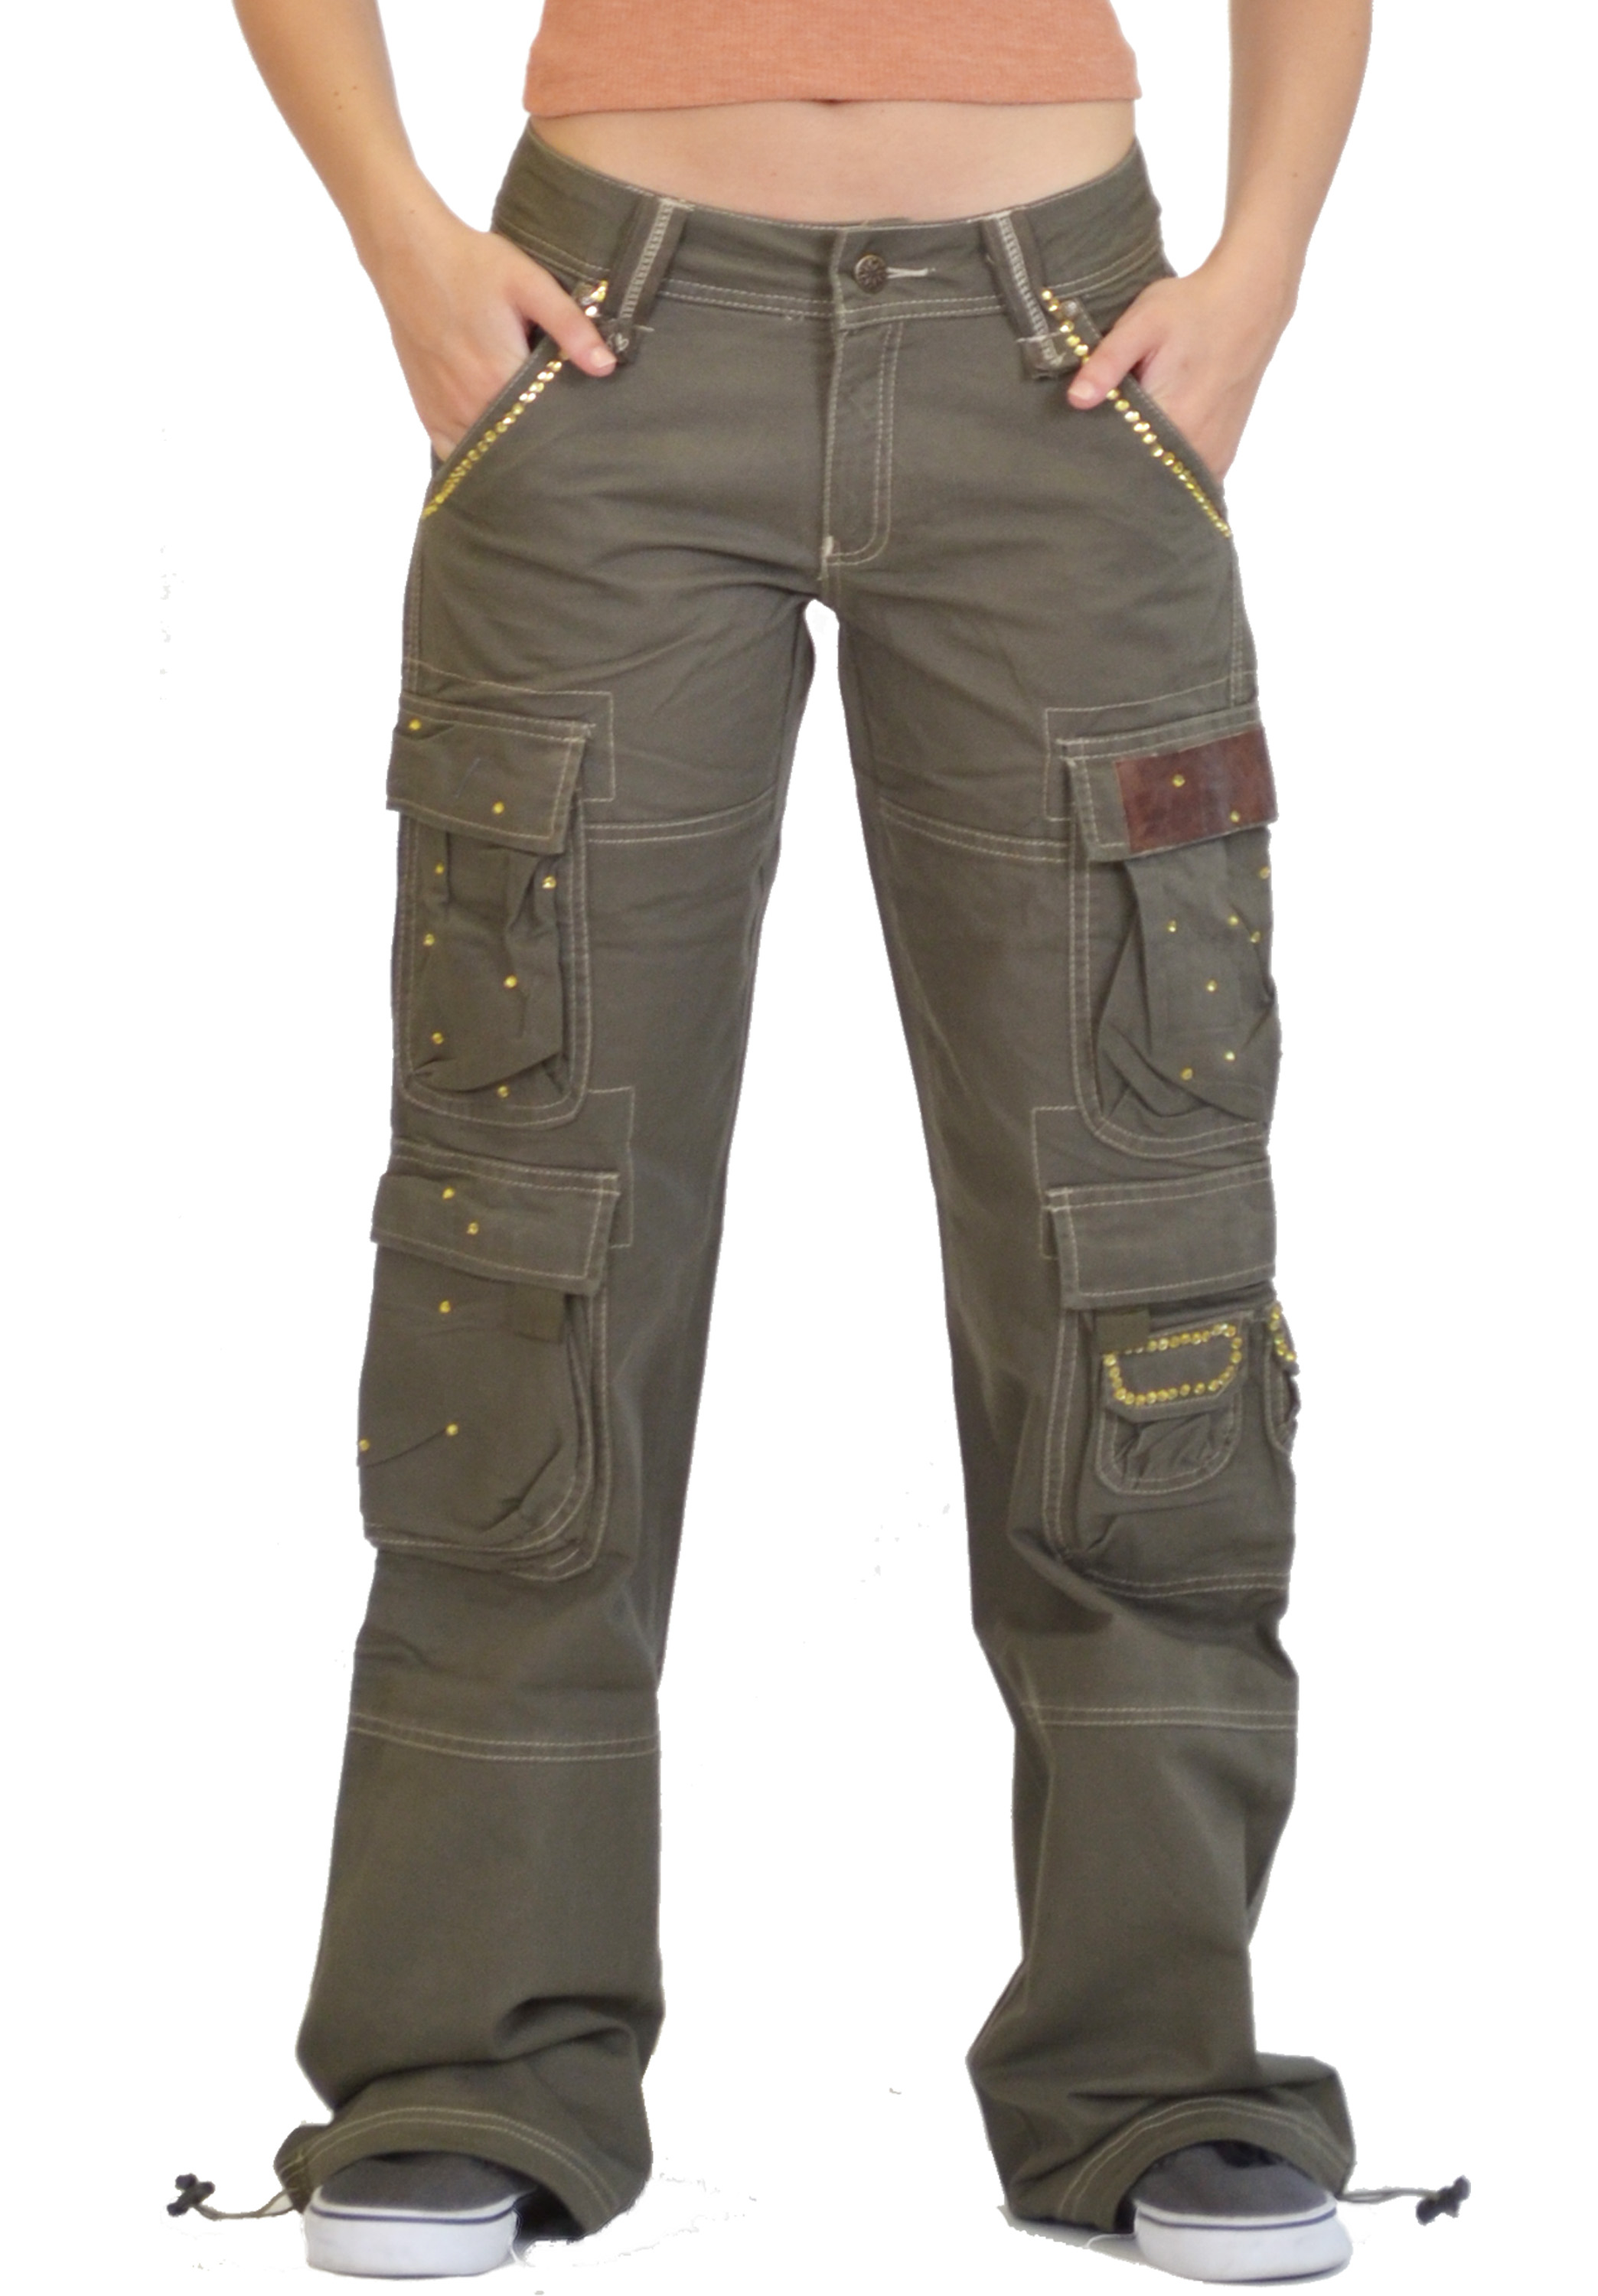 Popular Best 25+ Cargo Pants Ideas On Pinterest | Green Cargo Pants Cargo Pants Outfit And Army Green Pants